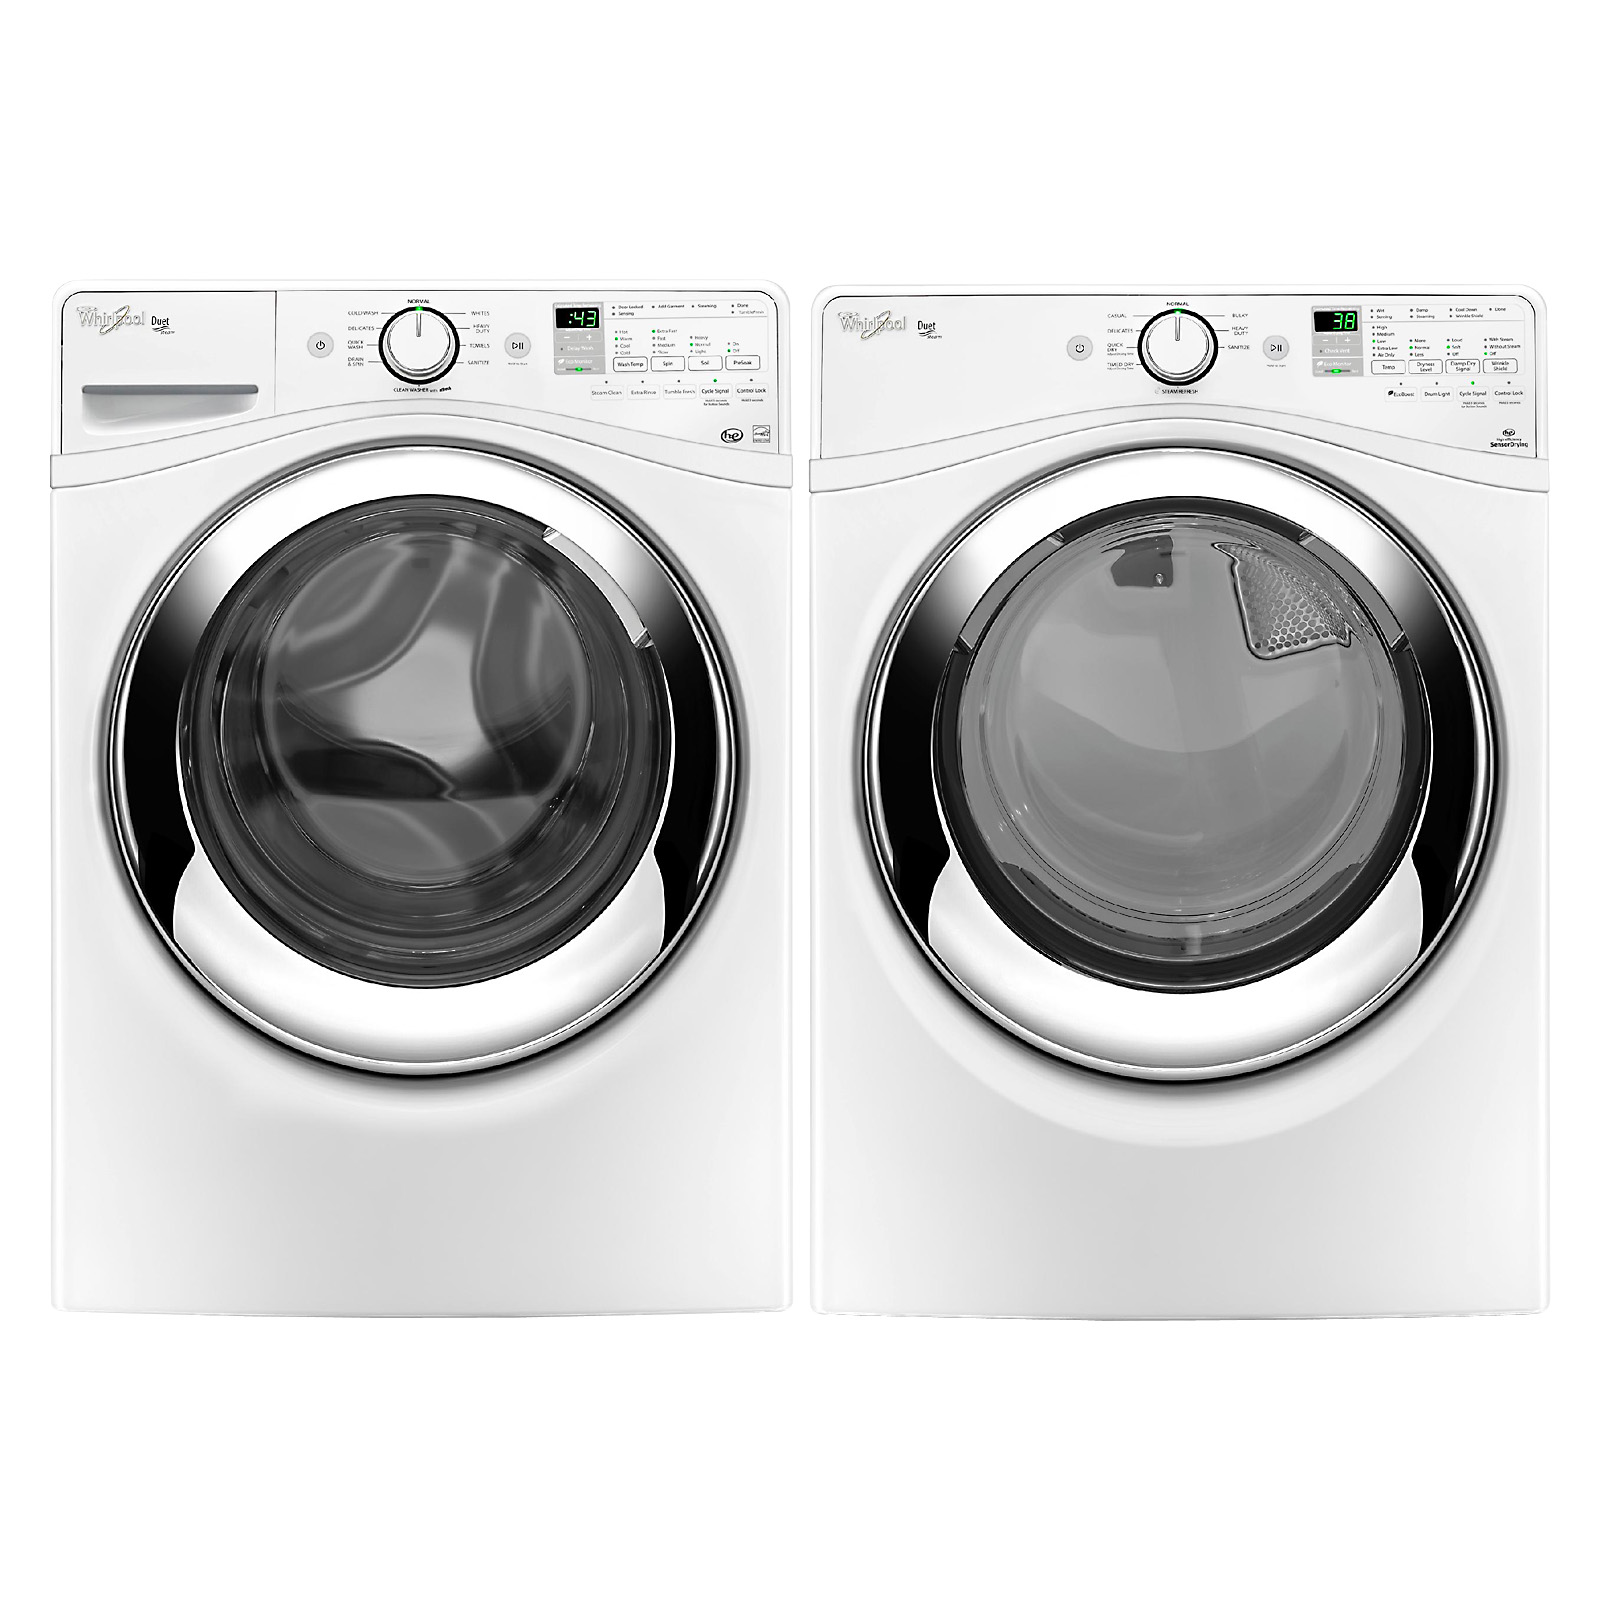 hight resolution of door whirlpool duet washer psc learn what needed listed terrific graphic for whirlpool duet washer door handle owners manual